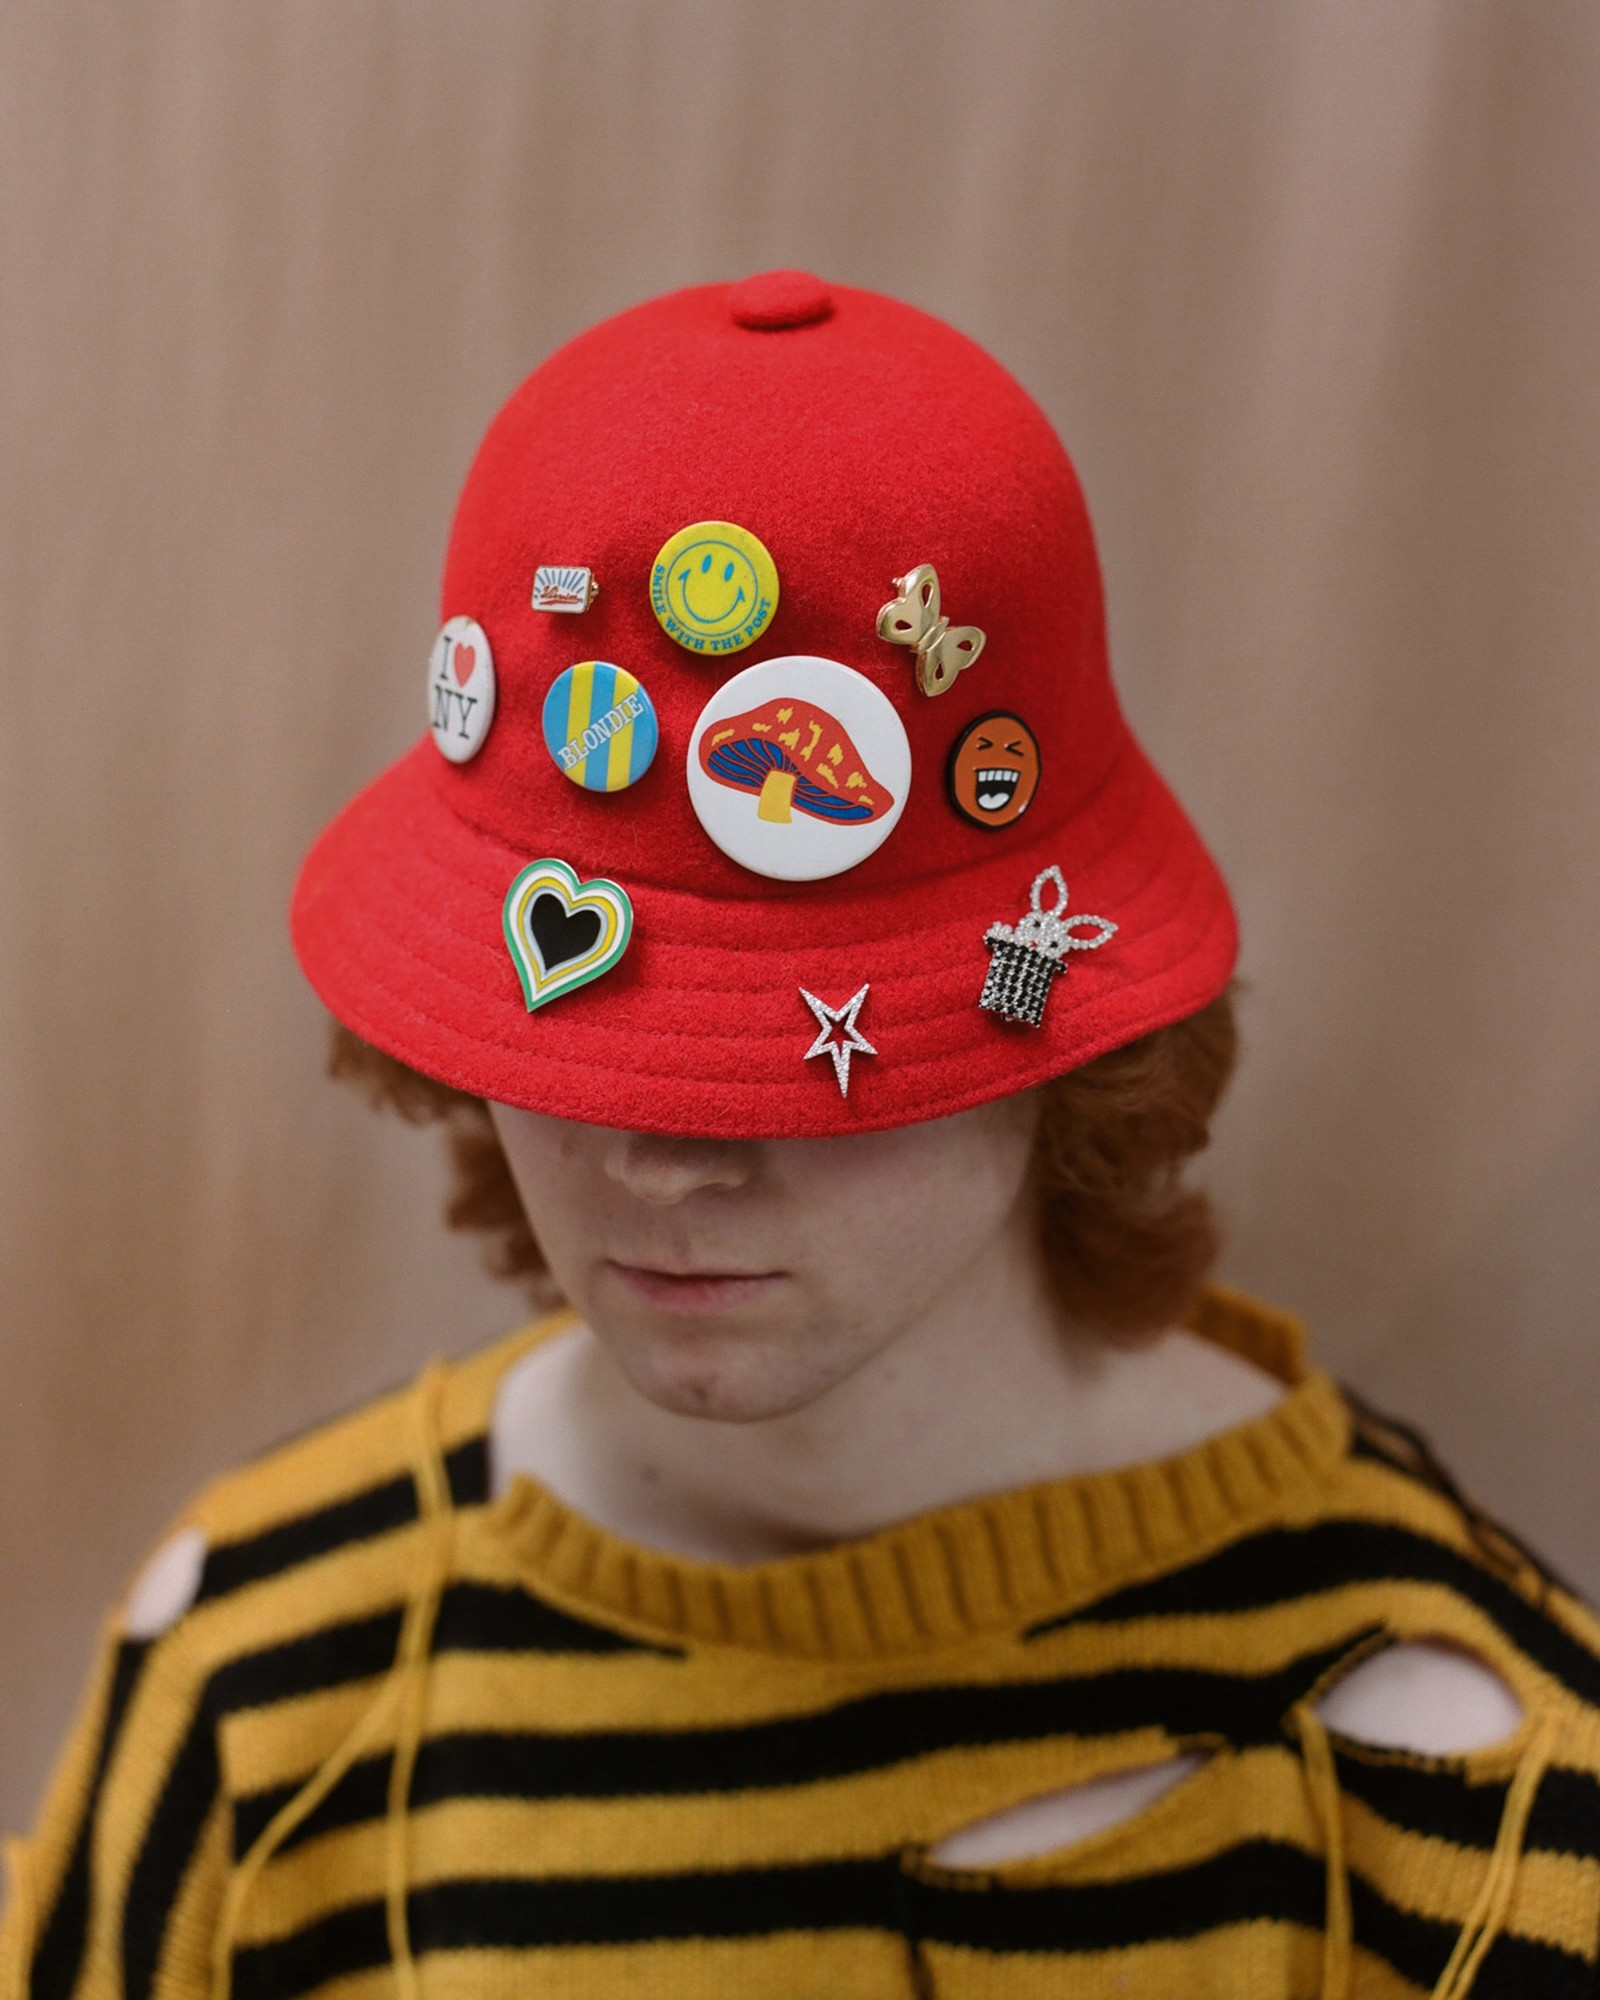 SweaterCharles Jeffrey Loverboy, HatKangol, (from left to right) I heart NY pinTHE RUSTY PIN, Small enamel pinVISVIM from MR PORTER, Yellow smiley face pinTHE RUSTY PIN, Butterfly broochCONTEMPORARY WARDROBE, Orange smiley face pin DUO LTD, Blondie pinTHE RUSTY PIN, Mushroom pinTHE RUSTY PIN, Heart pinCONTEMPORARY WARDROBE, Star EarringALAN CROCETTI, Rabbit in a hat broochART SCHOOL from MATCHES UK